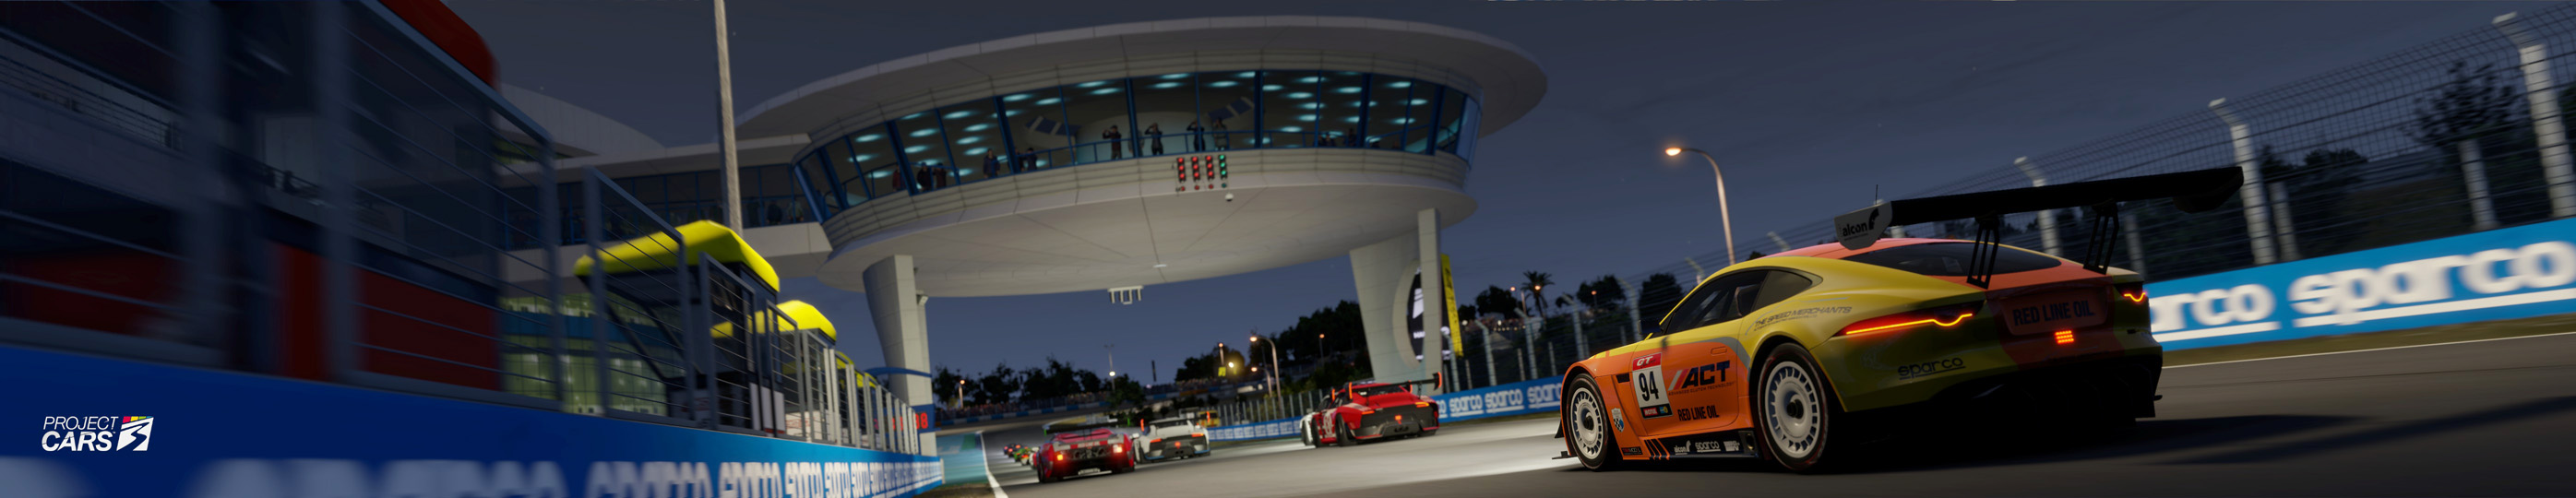 0 PROJECT CARS 3 JAG F TYPE RACING at JEREZ copy.jpg